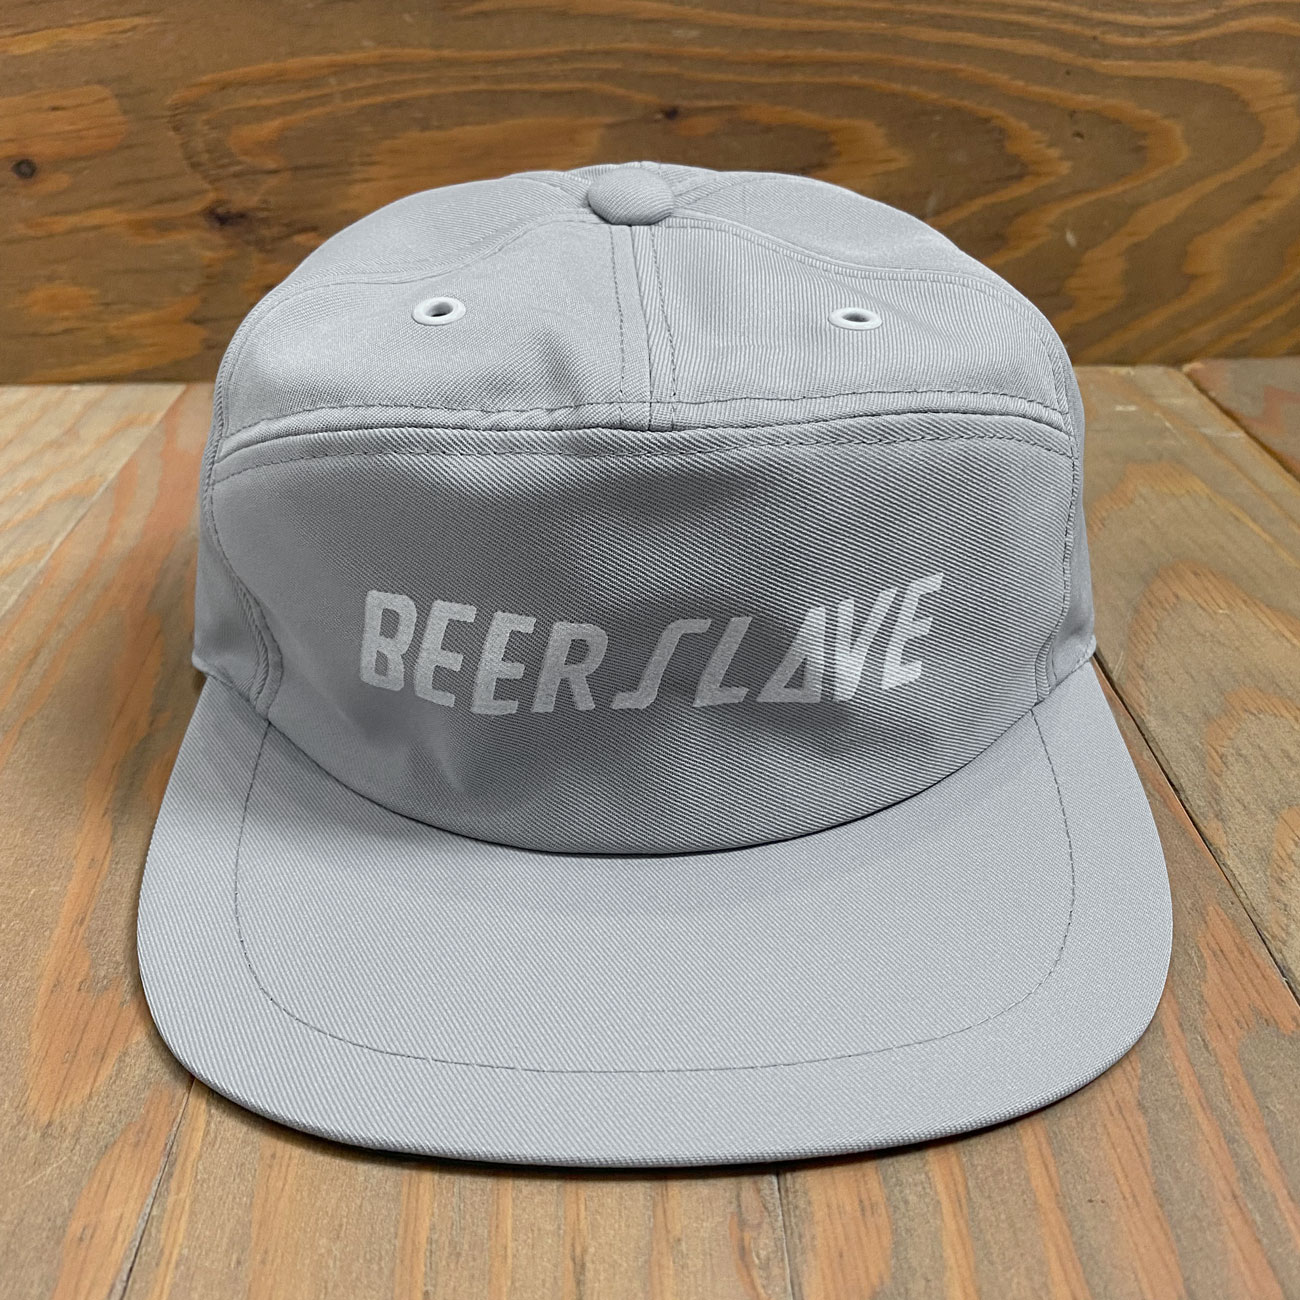 BEER SLAVE WORK CAP GREY